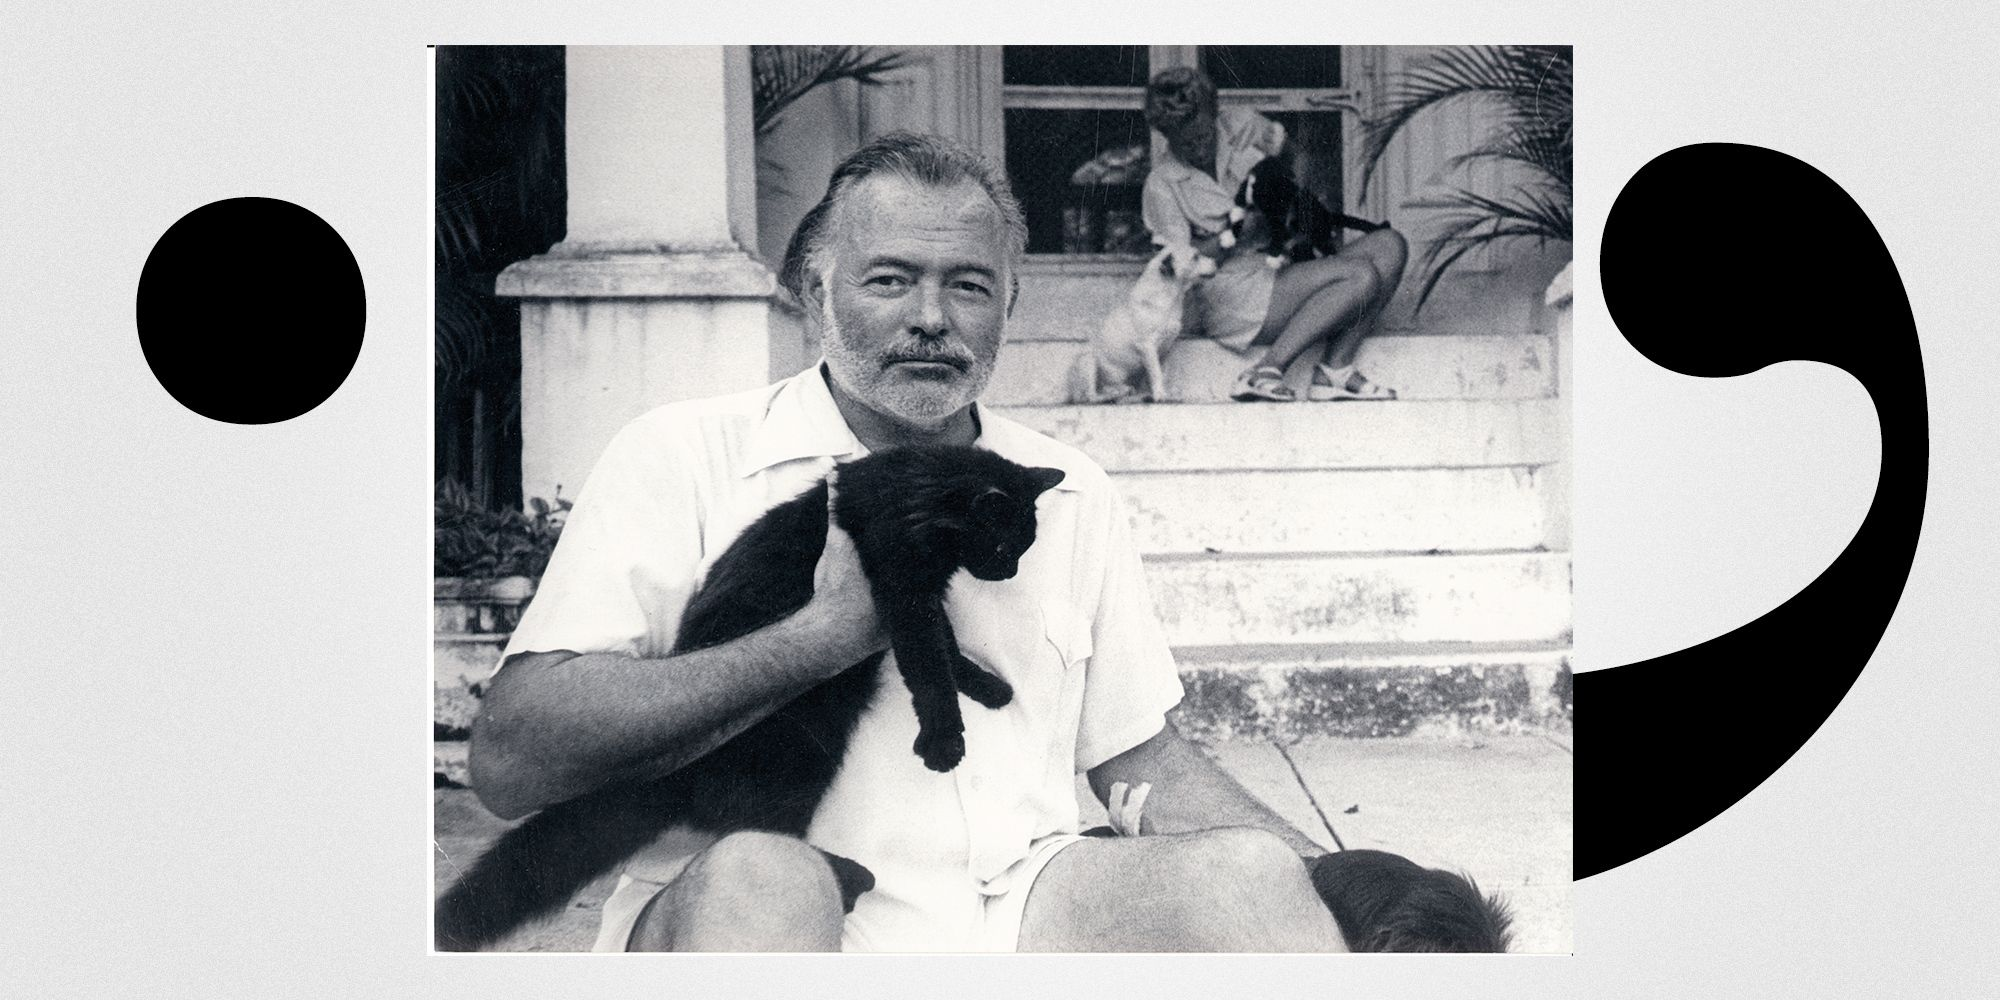 Ken Burns and Lynn Novick Reveal Ernest Hemingway's Private Fascination With Gender Fluidity